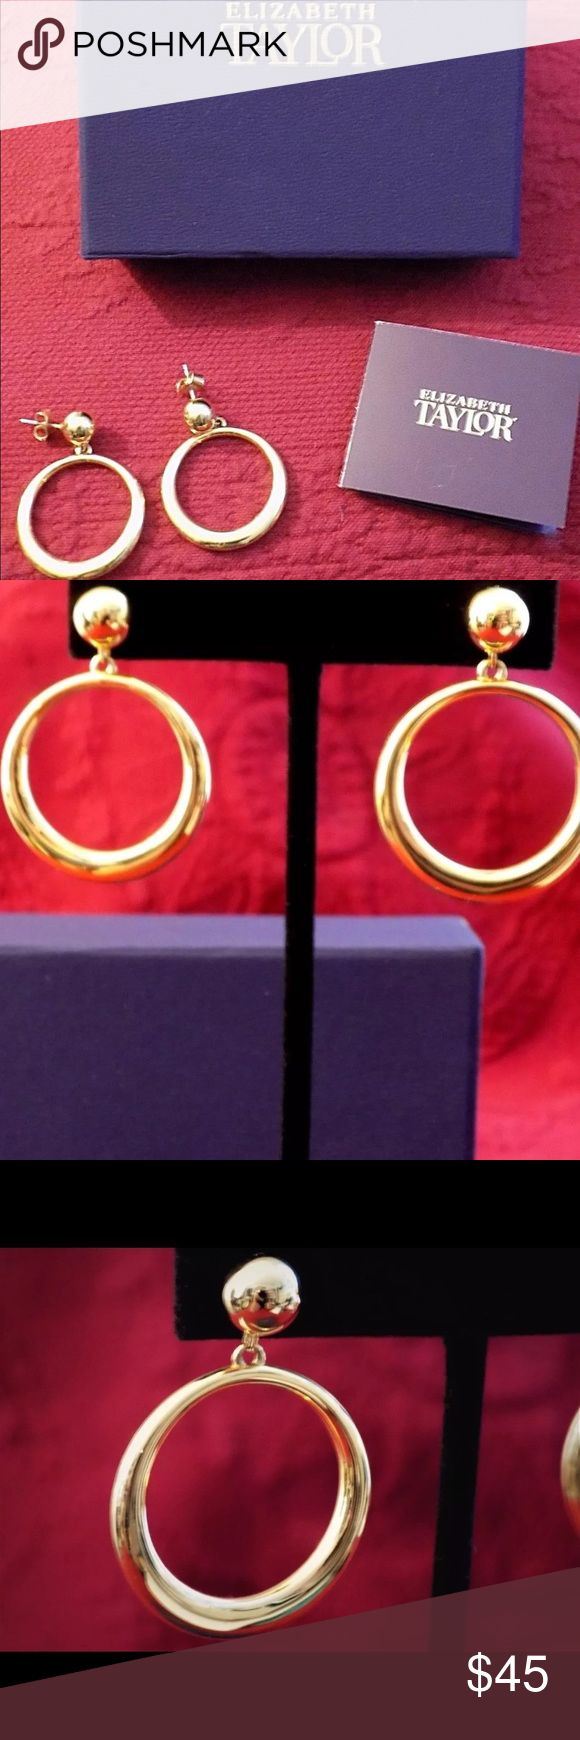 Gold Hoops | Elizabeth Taylor Collection for QVC These Front Facing Gold Hoops are retired from the Elizabeth Taylor Collection for QVC. They are an exact replica of the ones she wore. Elizabeth Taylor Jewelry Earrings